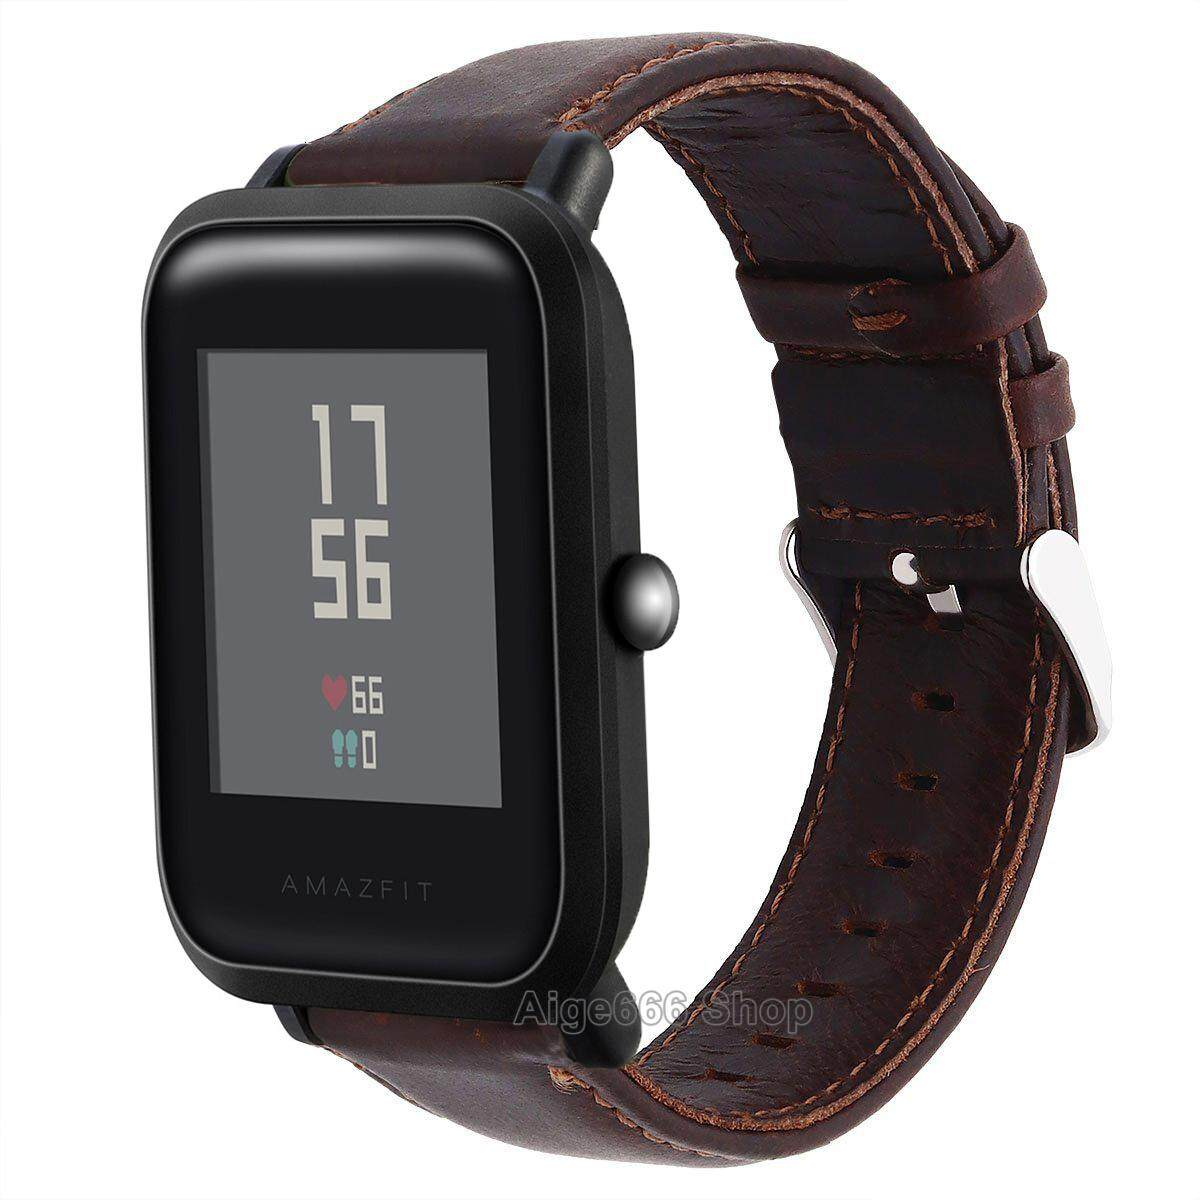 Sell Huami Amazfit Bip Cheapest Best Quality Ph Store Xiaomi Cover Protect Shell Case Php 380